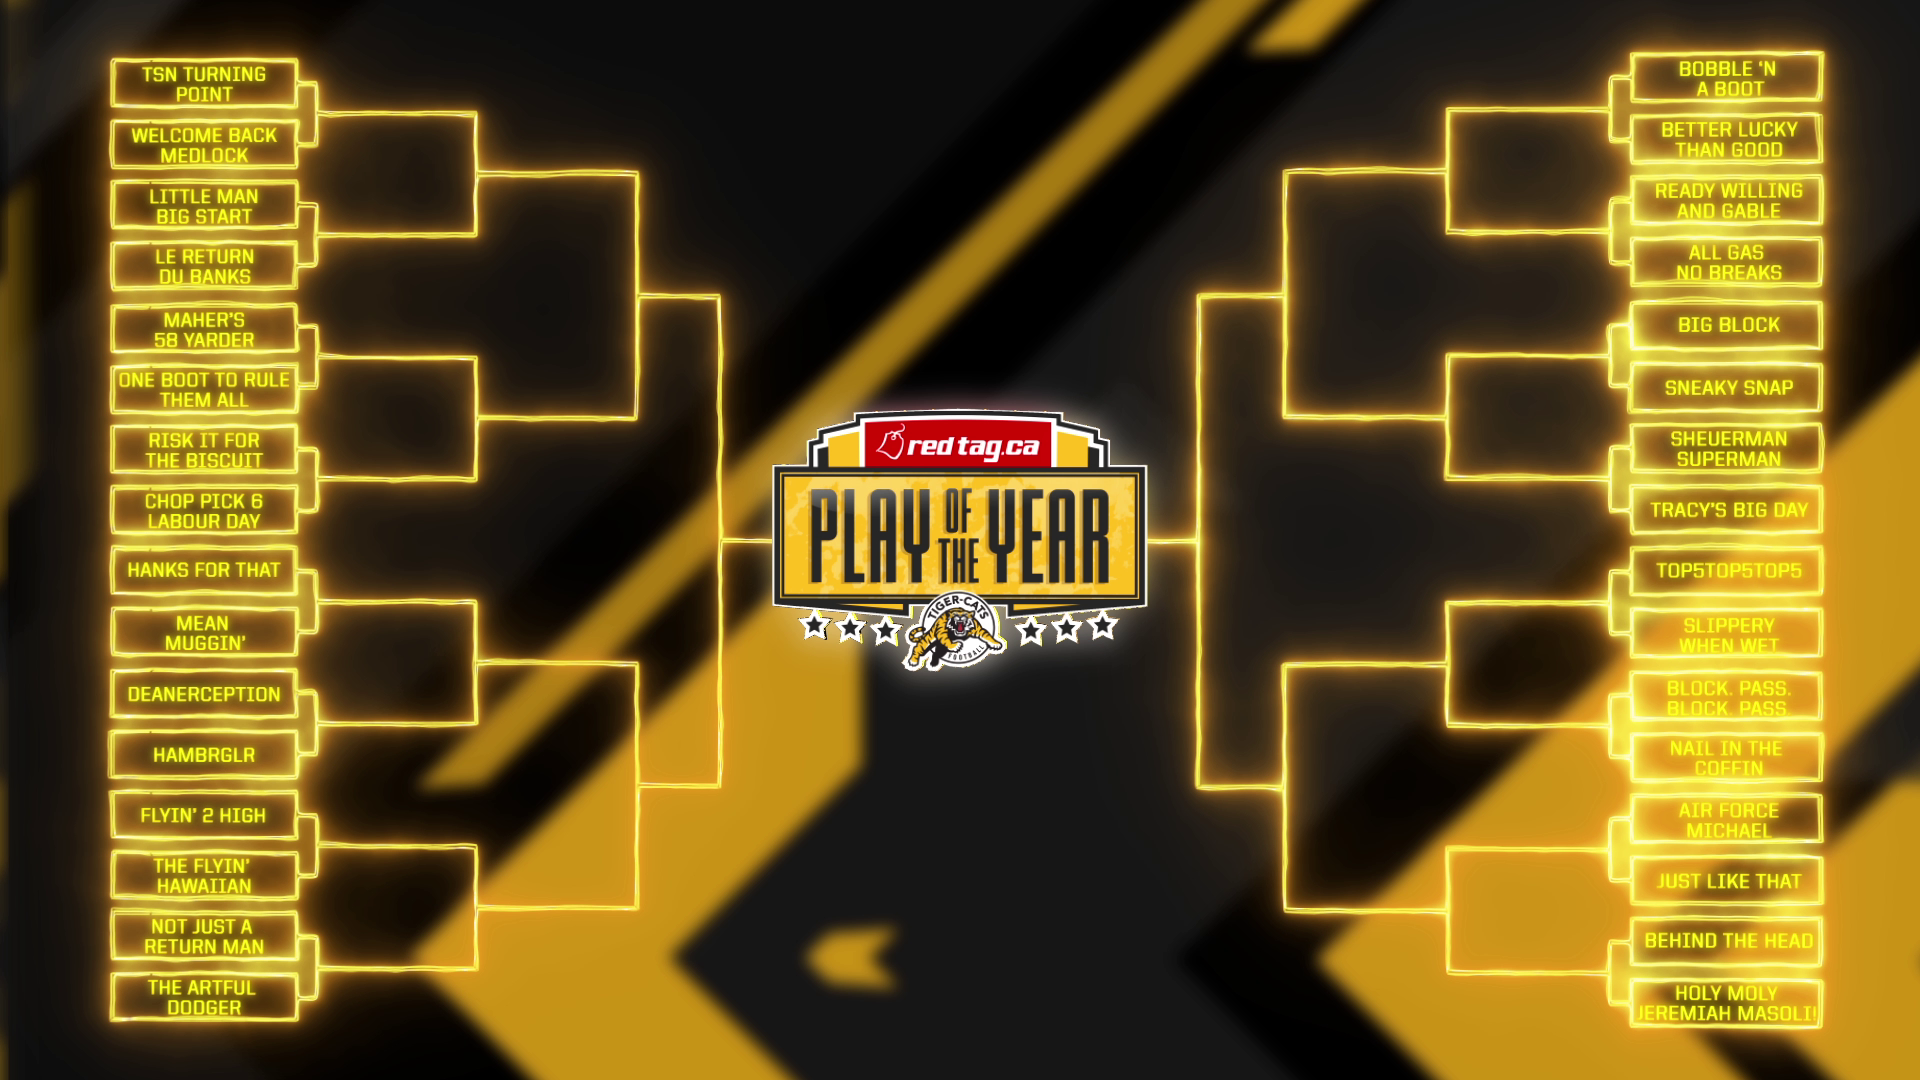 RedTag ca Play of the Year Bracket – Hamilton Tiger-Cats